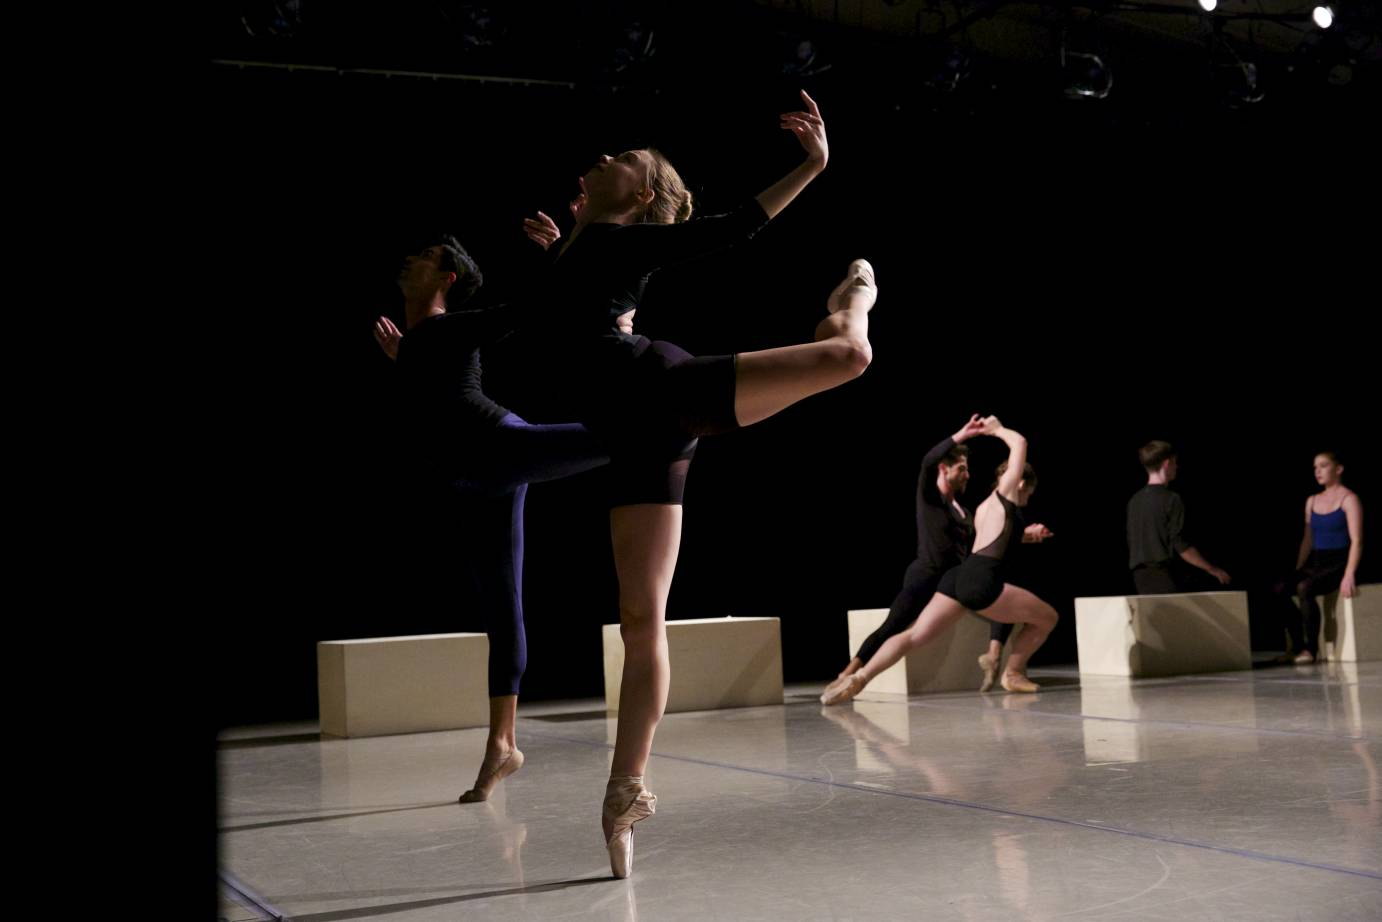 Two people pose in attitude in relve on one side of the side while other dancers lunge and sit in the background.